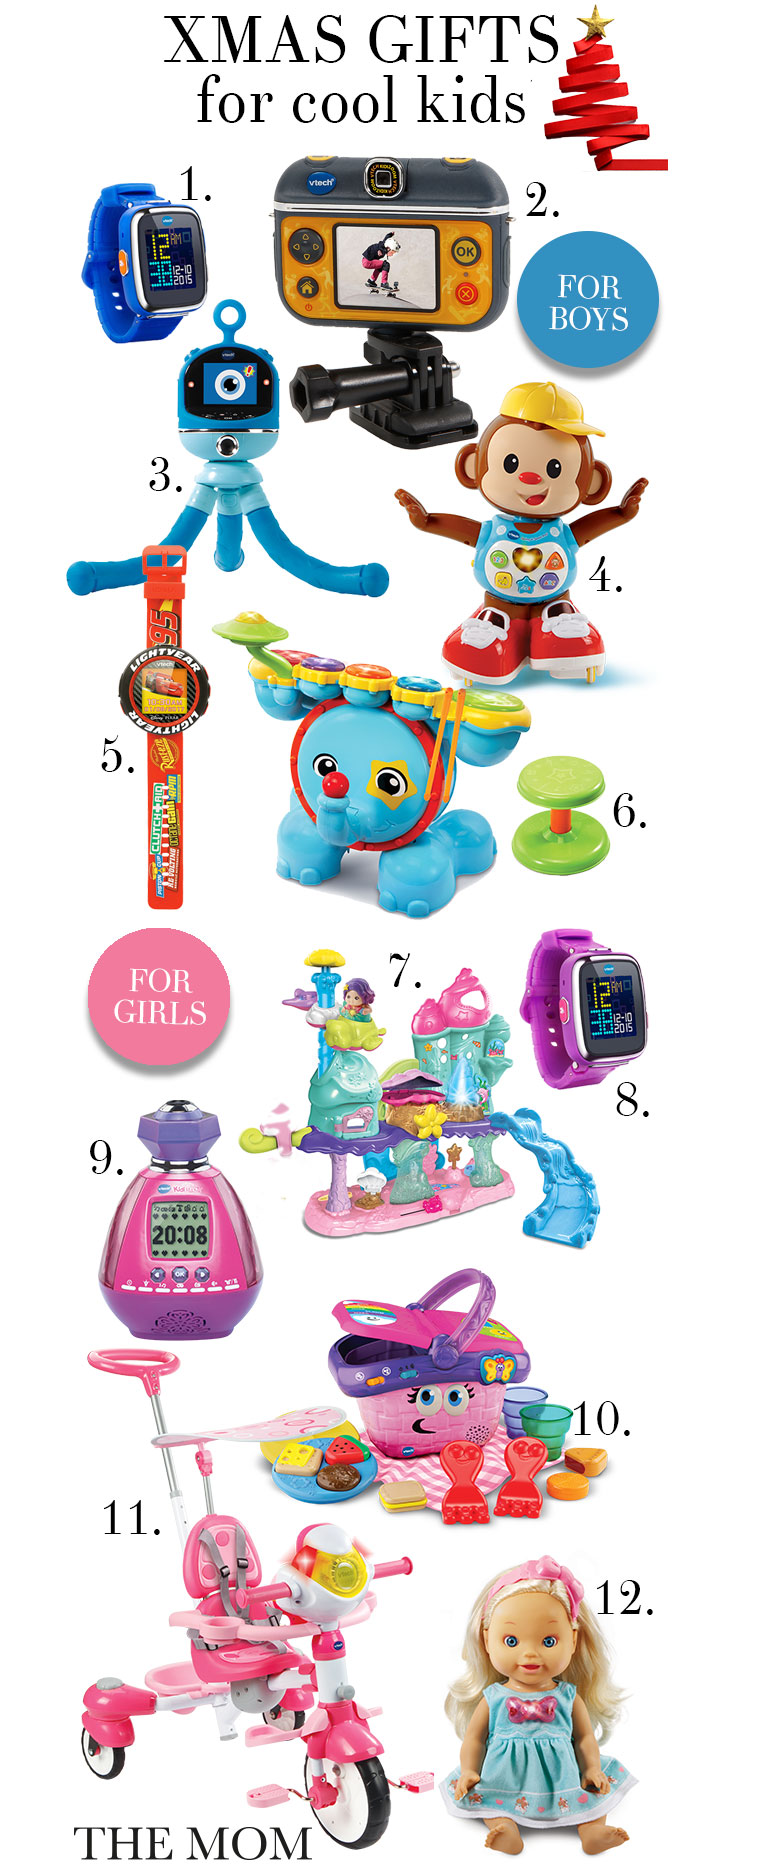 Xmas-gifts-for-cool-kids-The-Mom